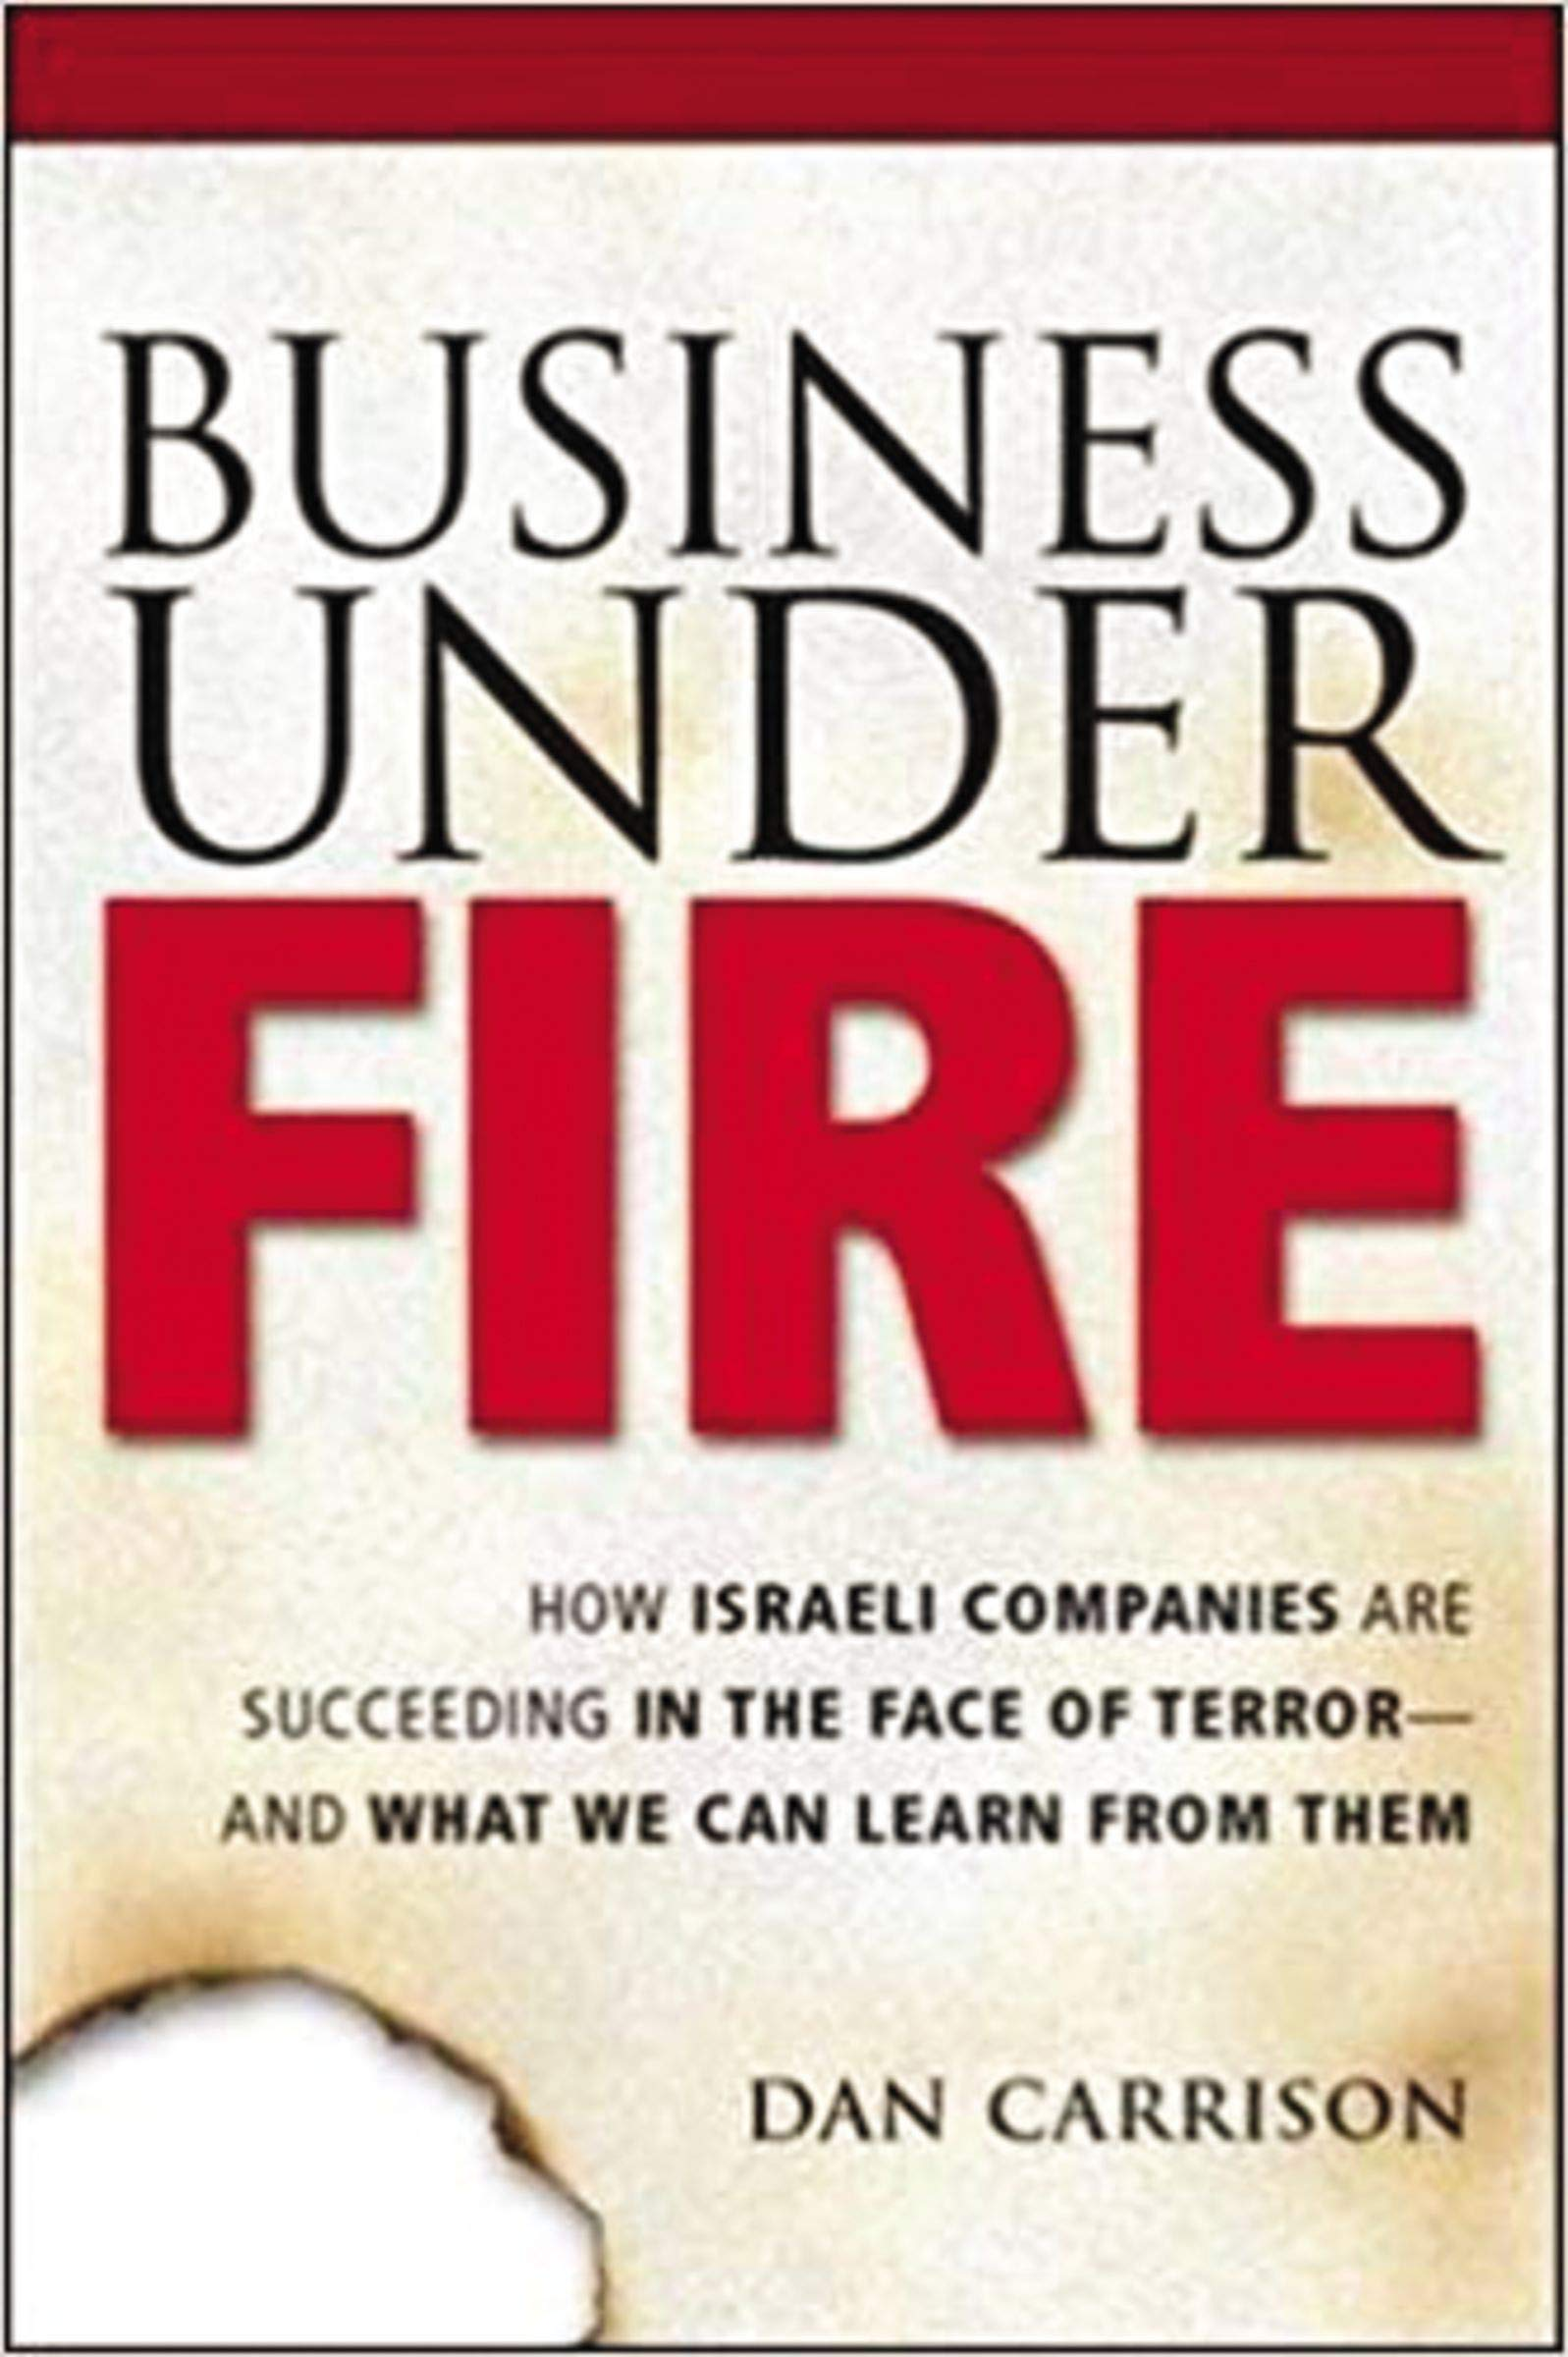 Business Under Fire: How Israeli Companies Are Succeeding in the Face of Terror - and What We Can Learn from Them